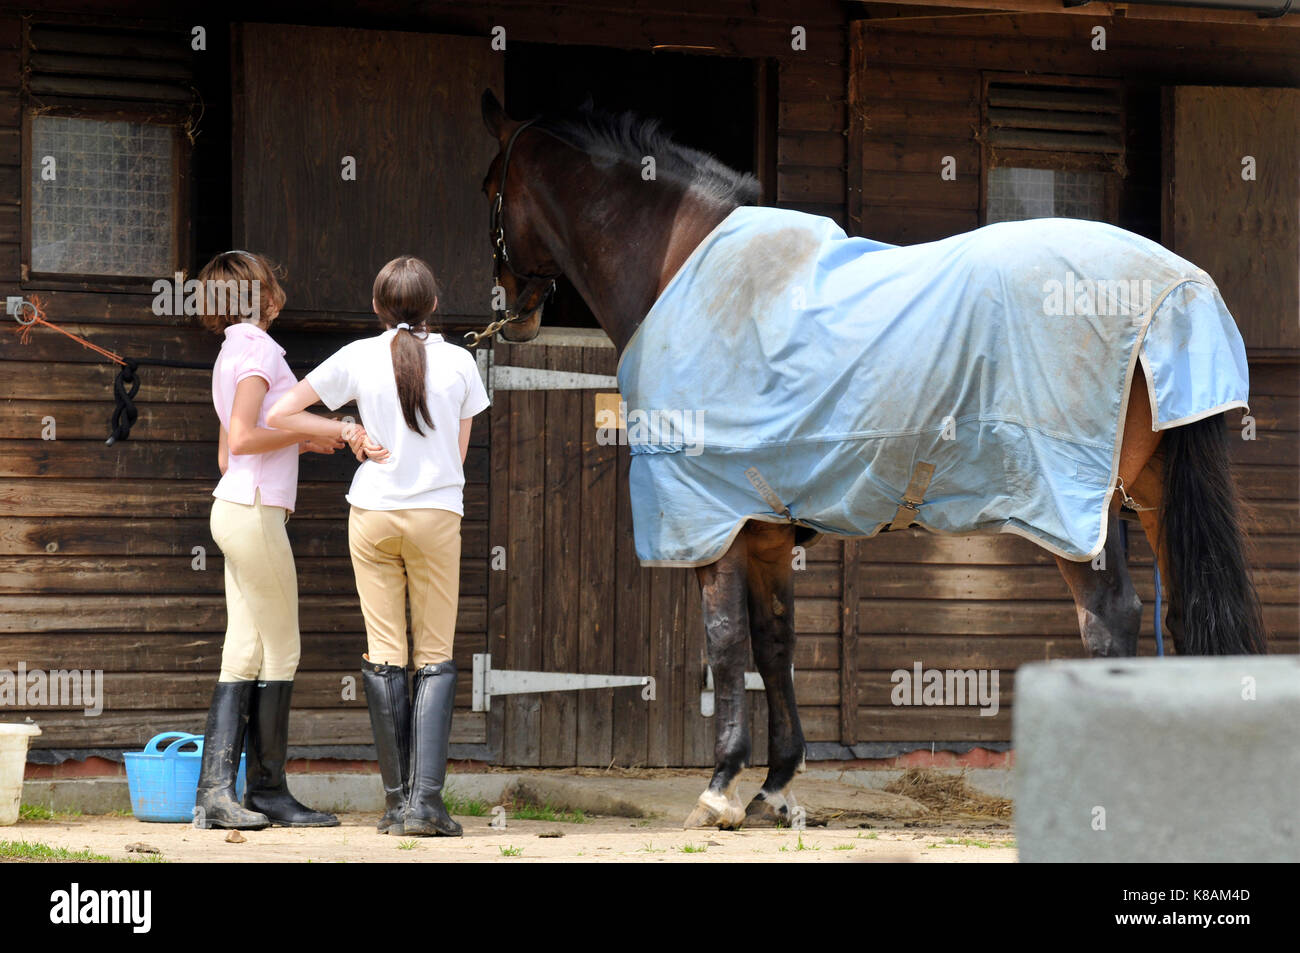 Some young girls or horse riders at a riding stables standing near horses and socialising and chatting discussing - Stock Image